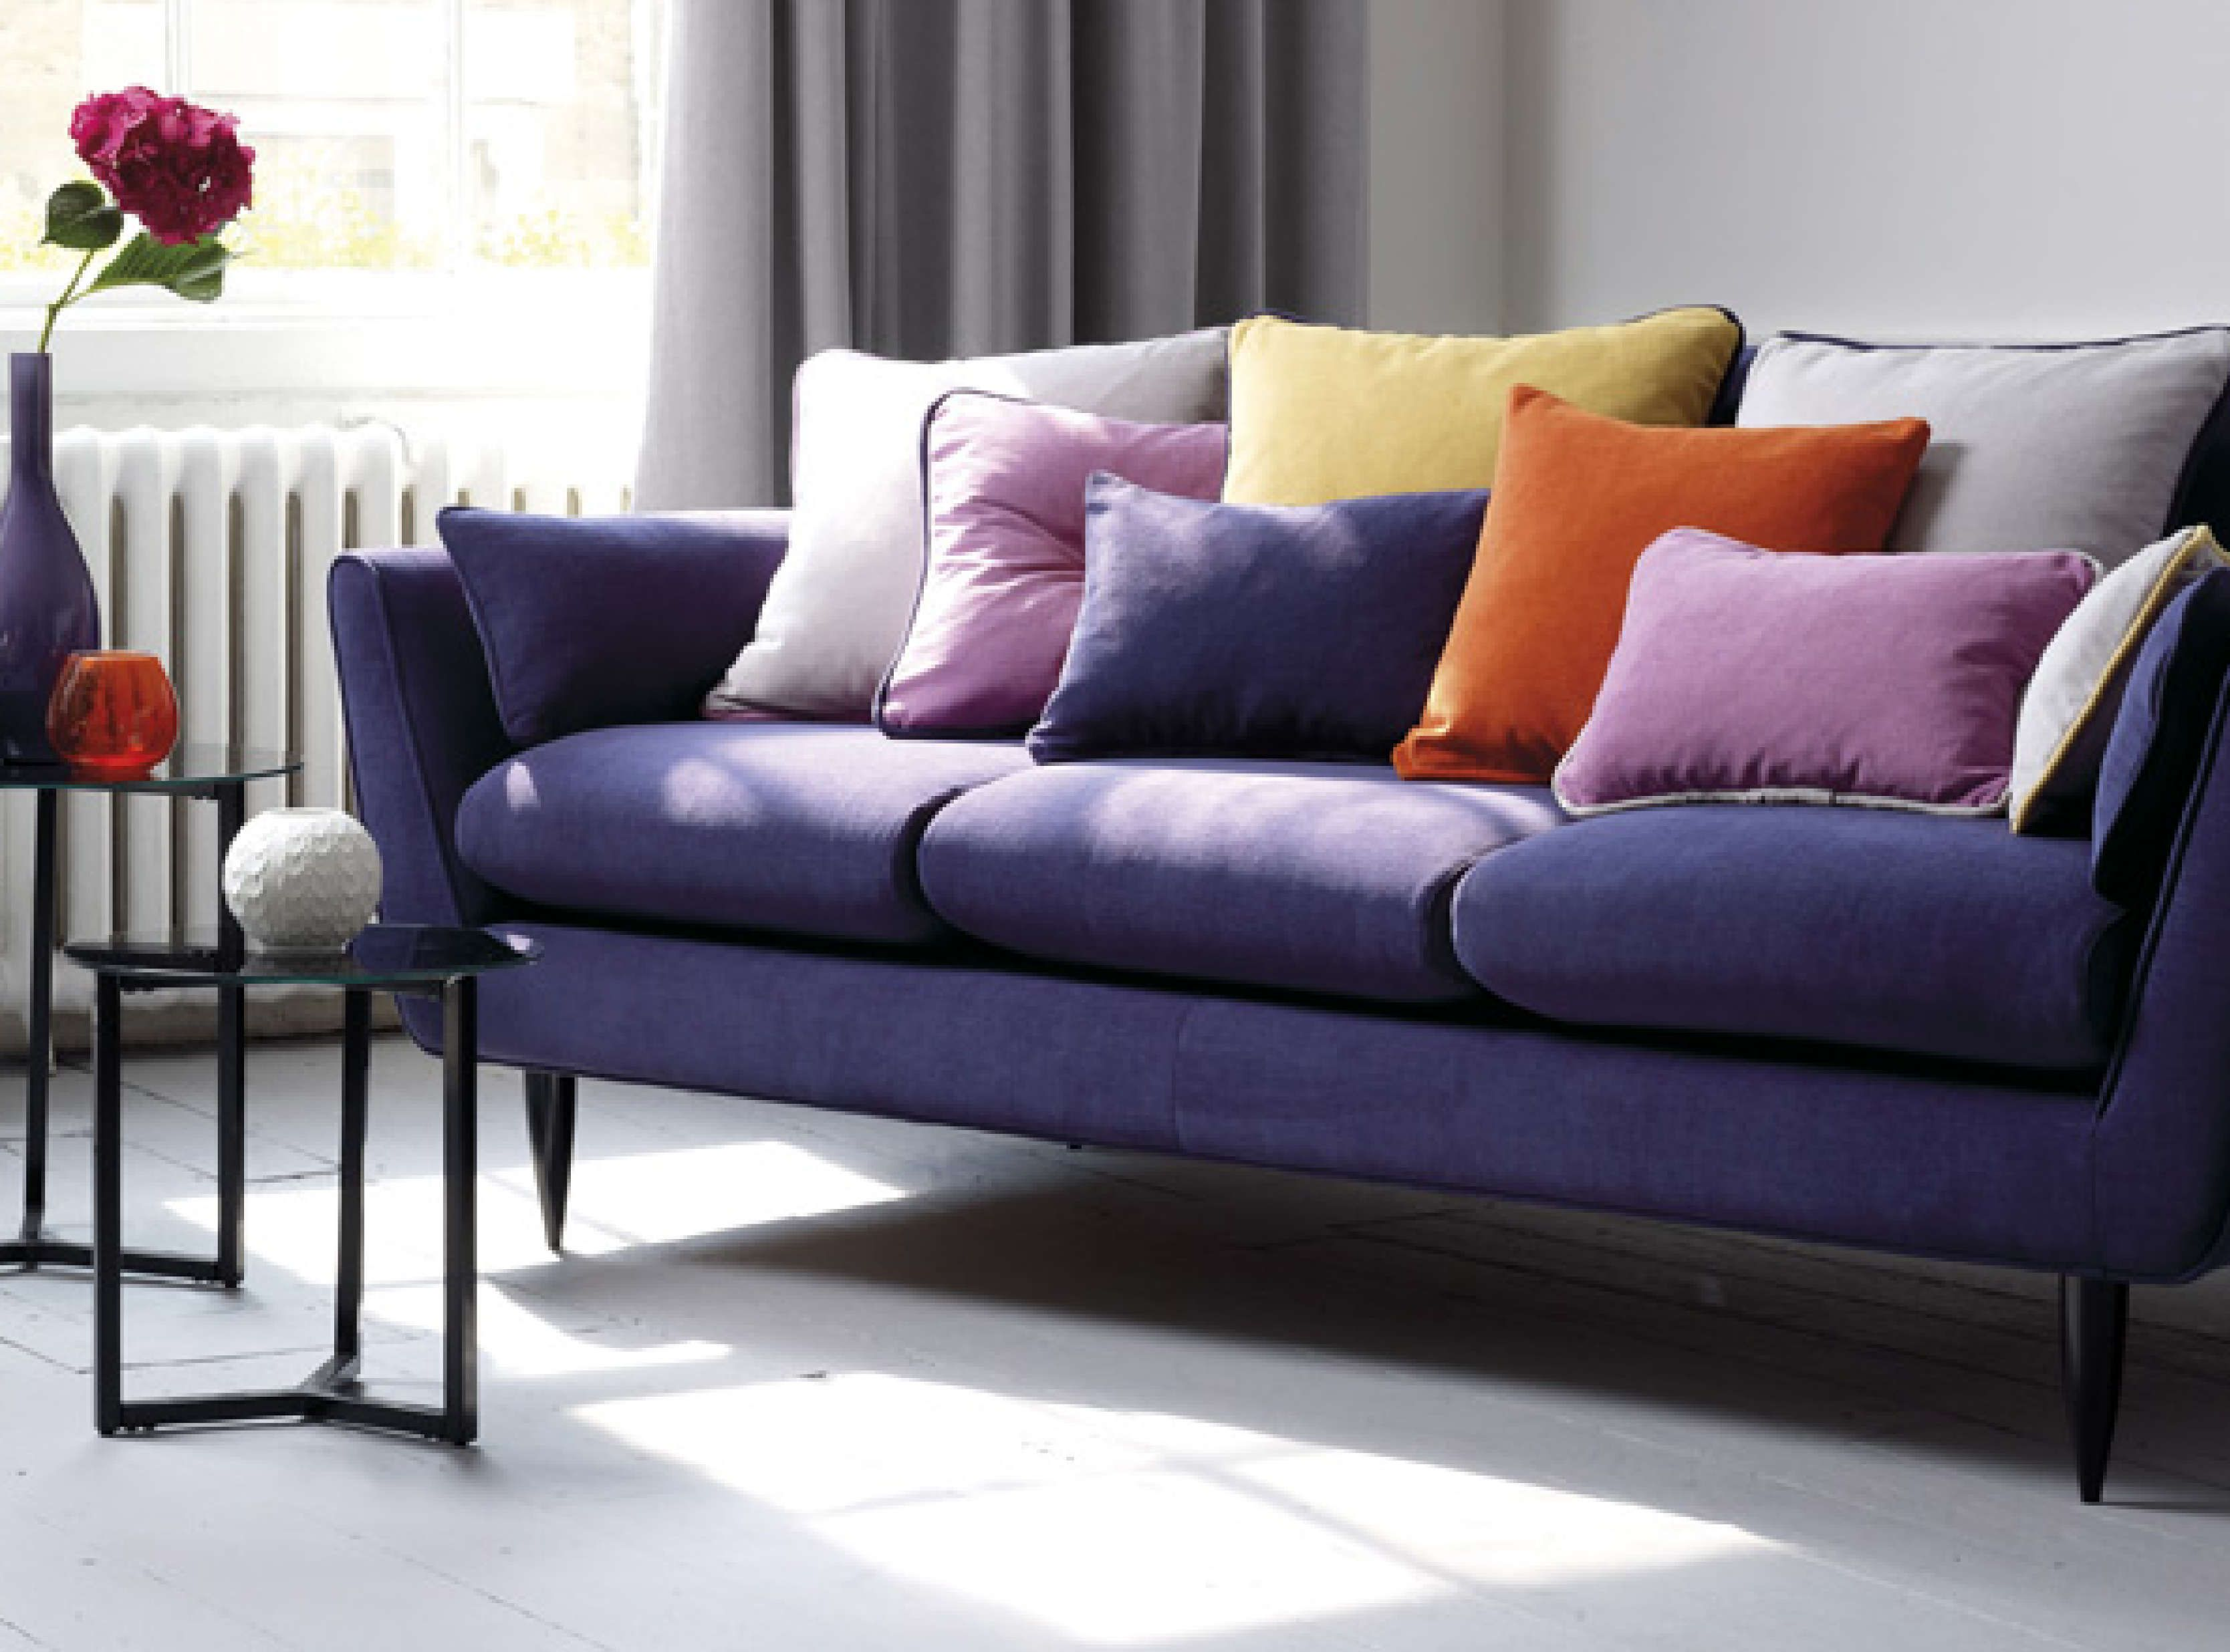 Durable Upholstery Fabric For Sofa A Chenille Plain Woven With Fibres That Have Innovative Aquaclean